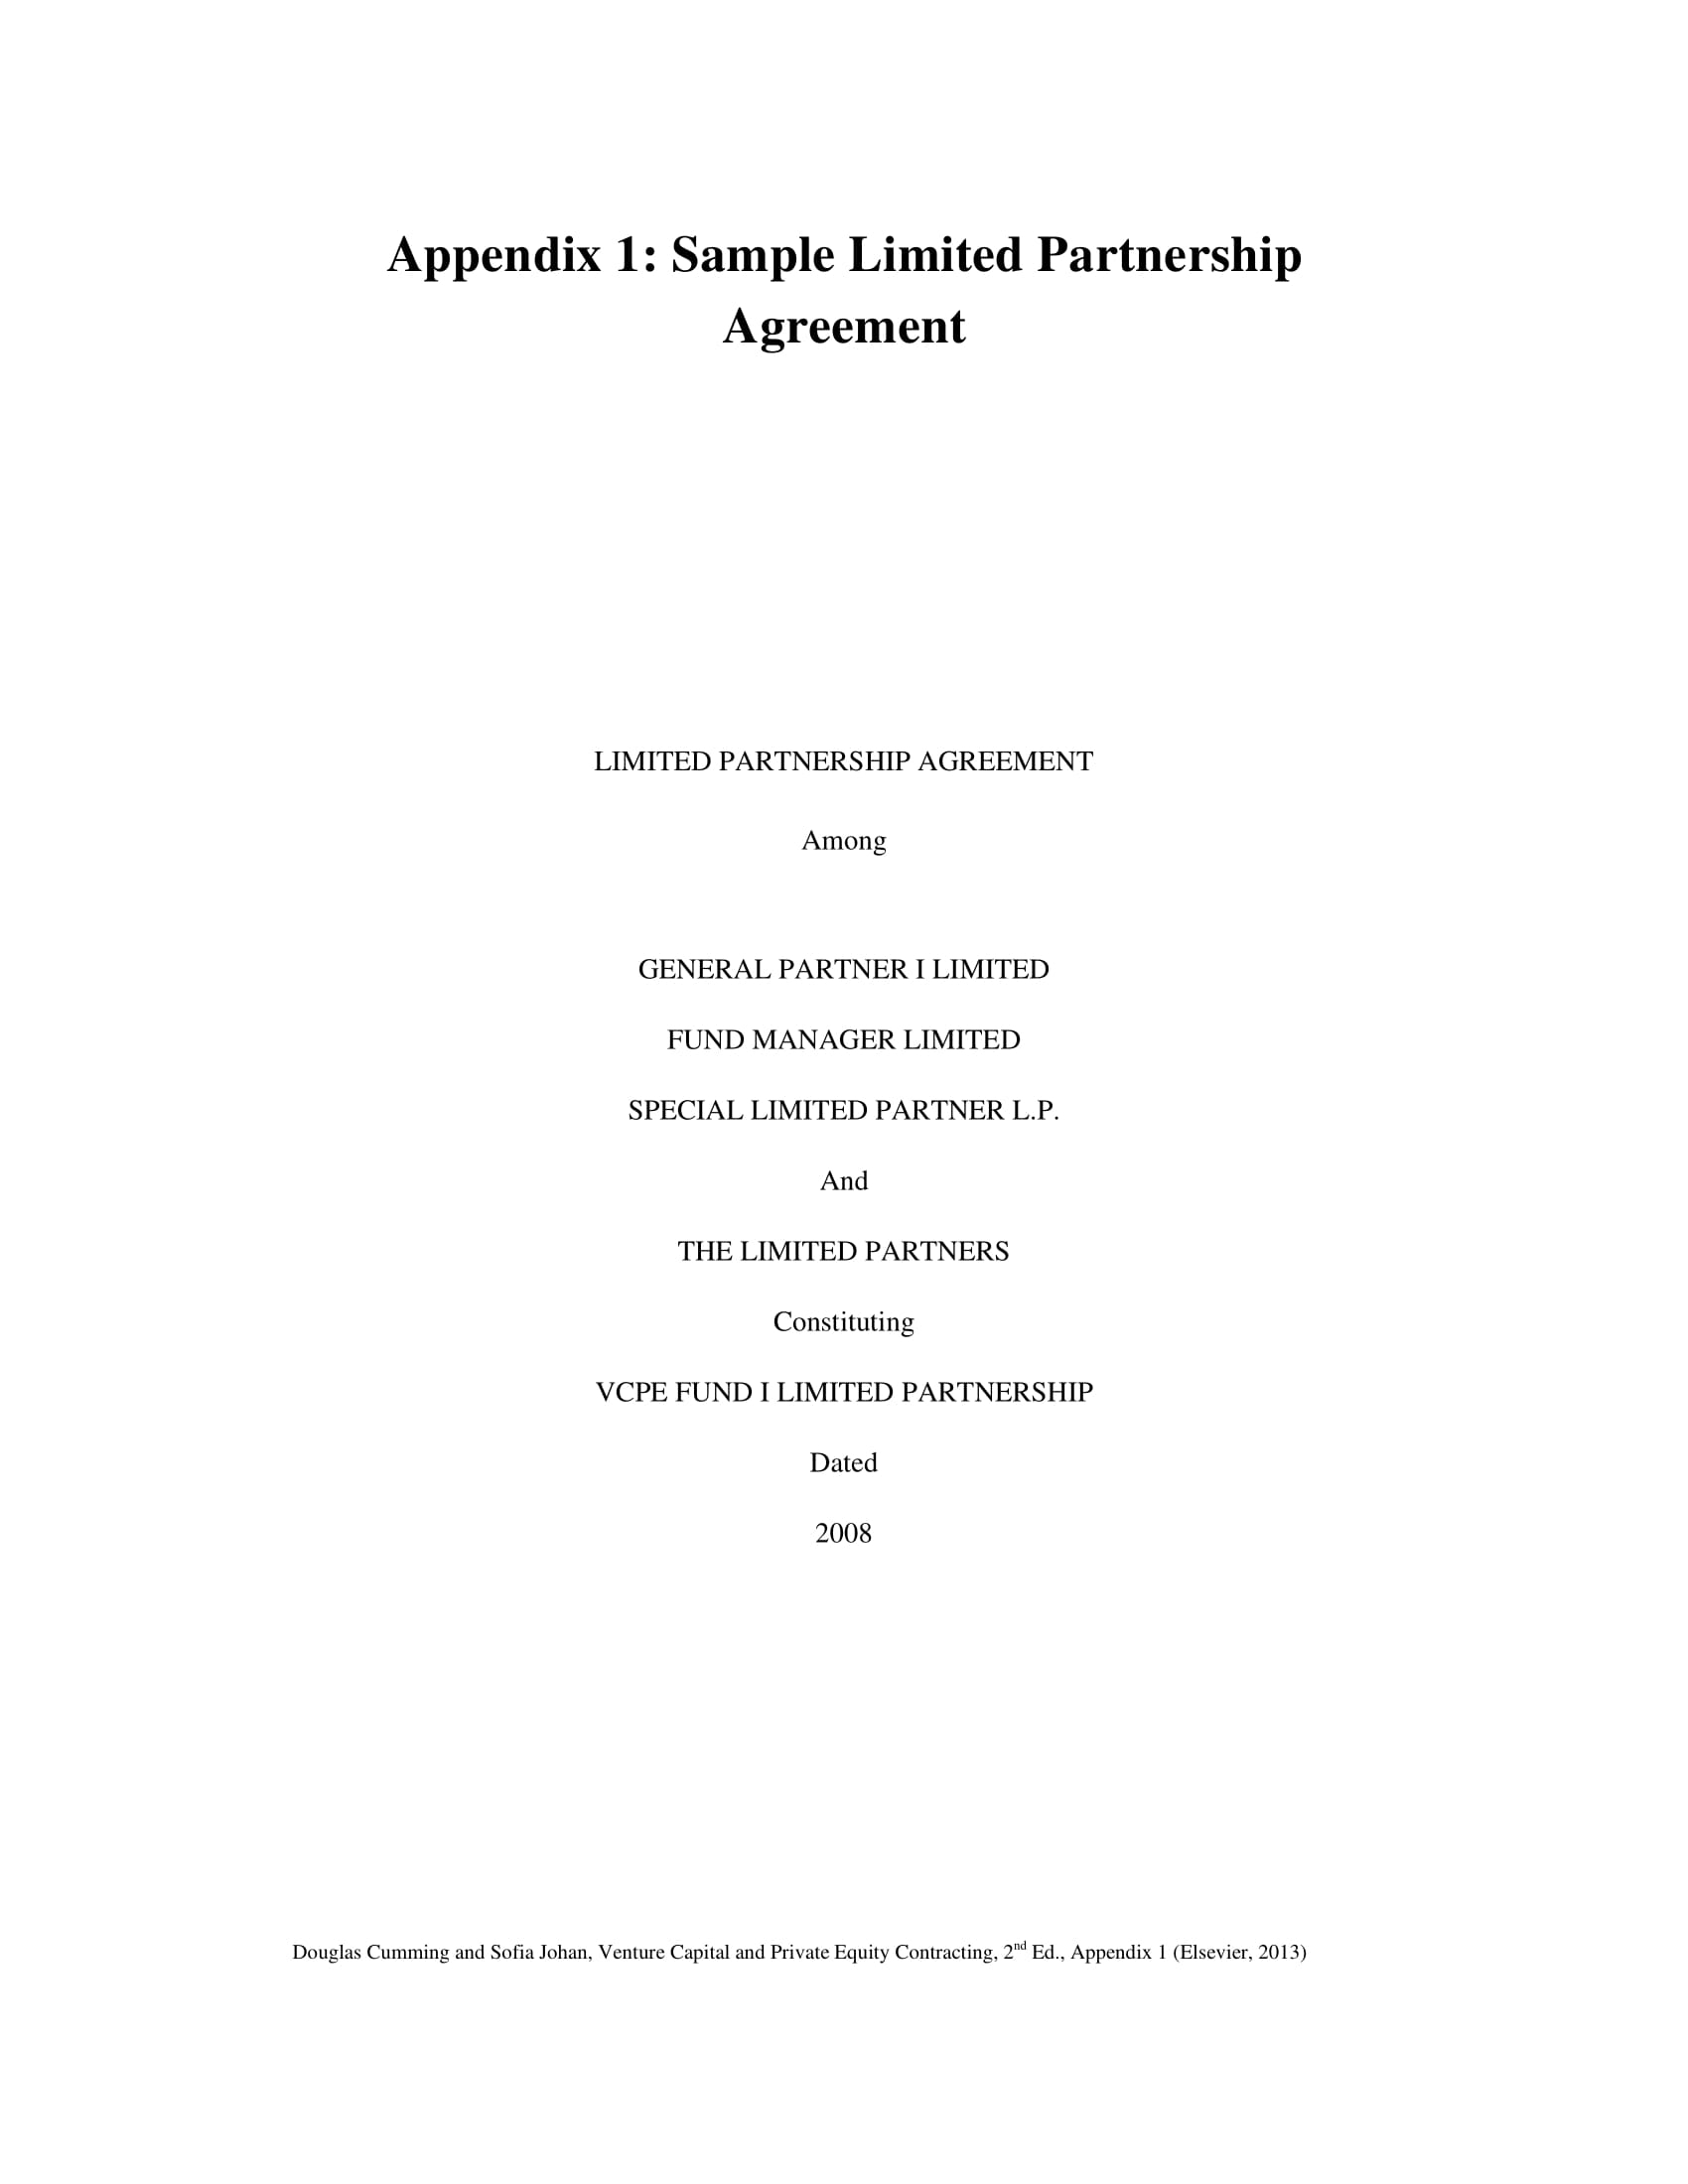 comprehensive partnership investment agreement example